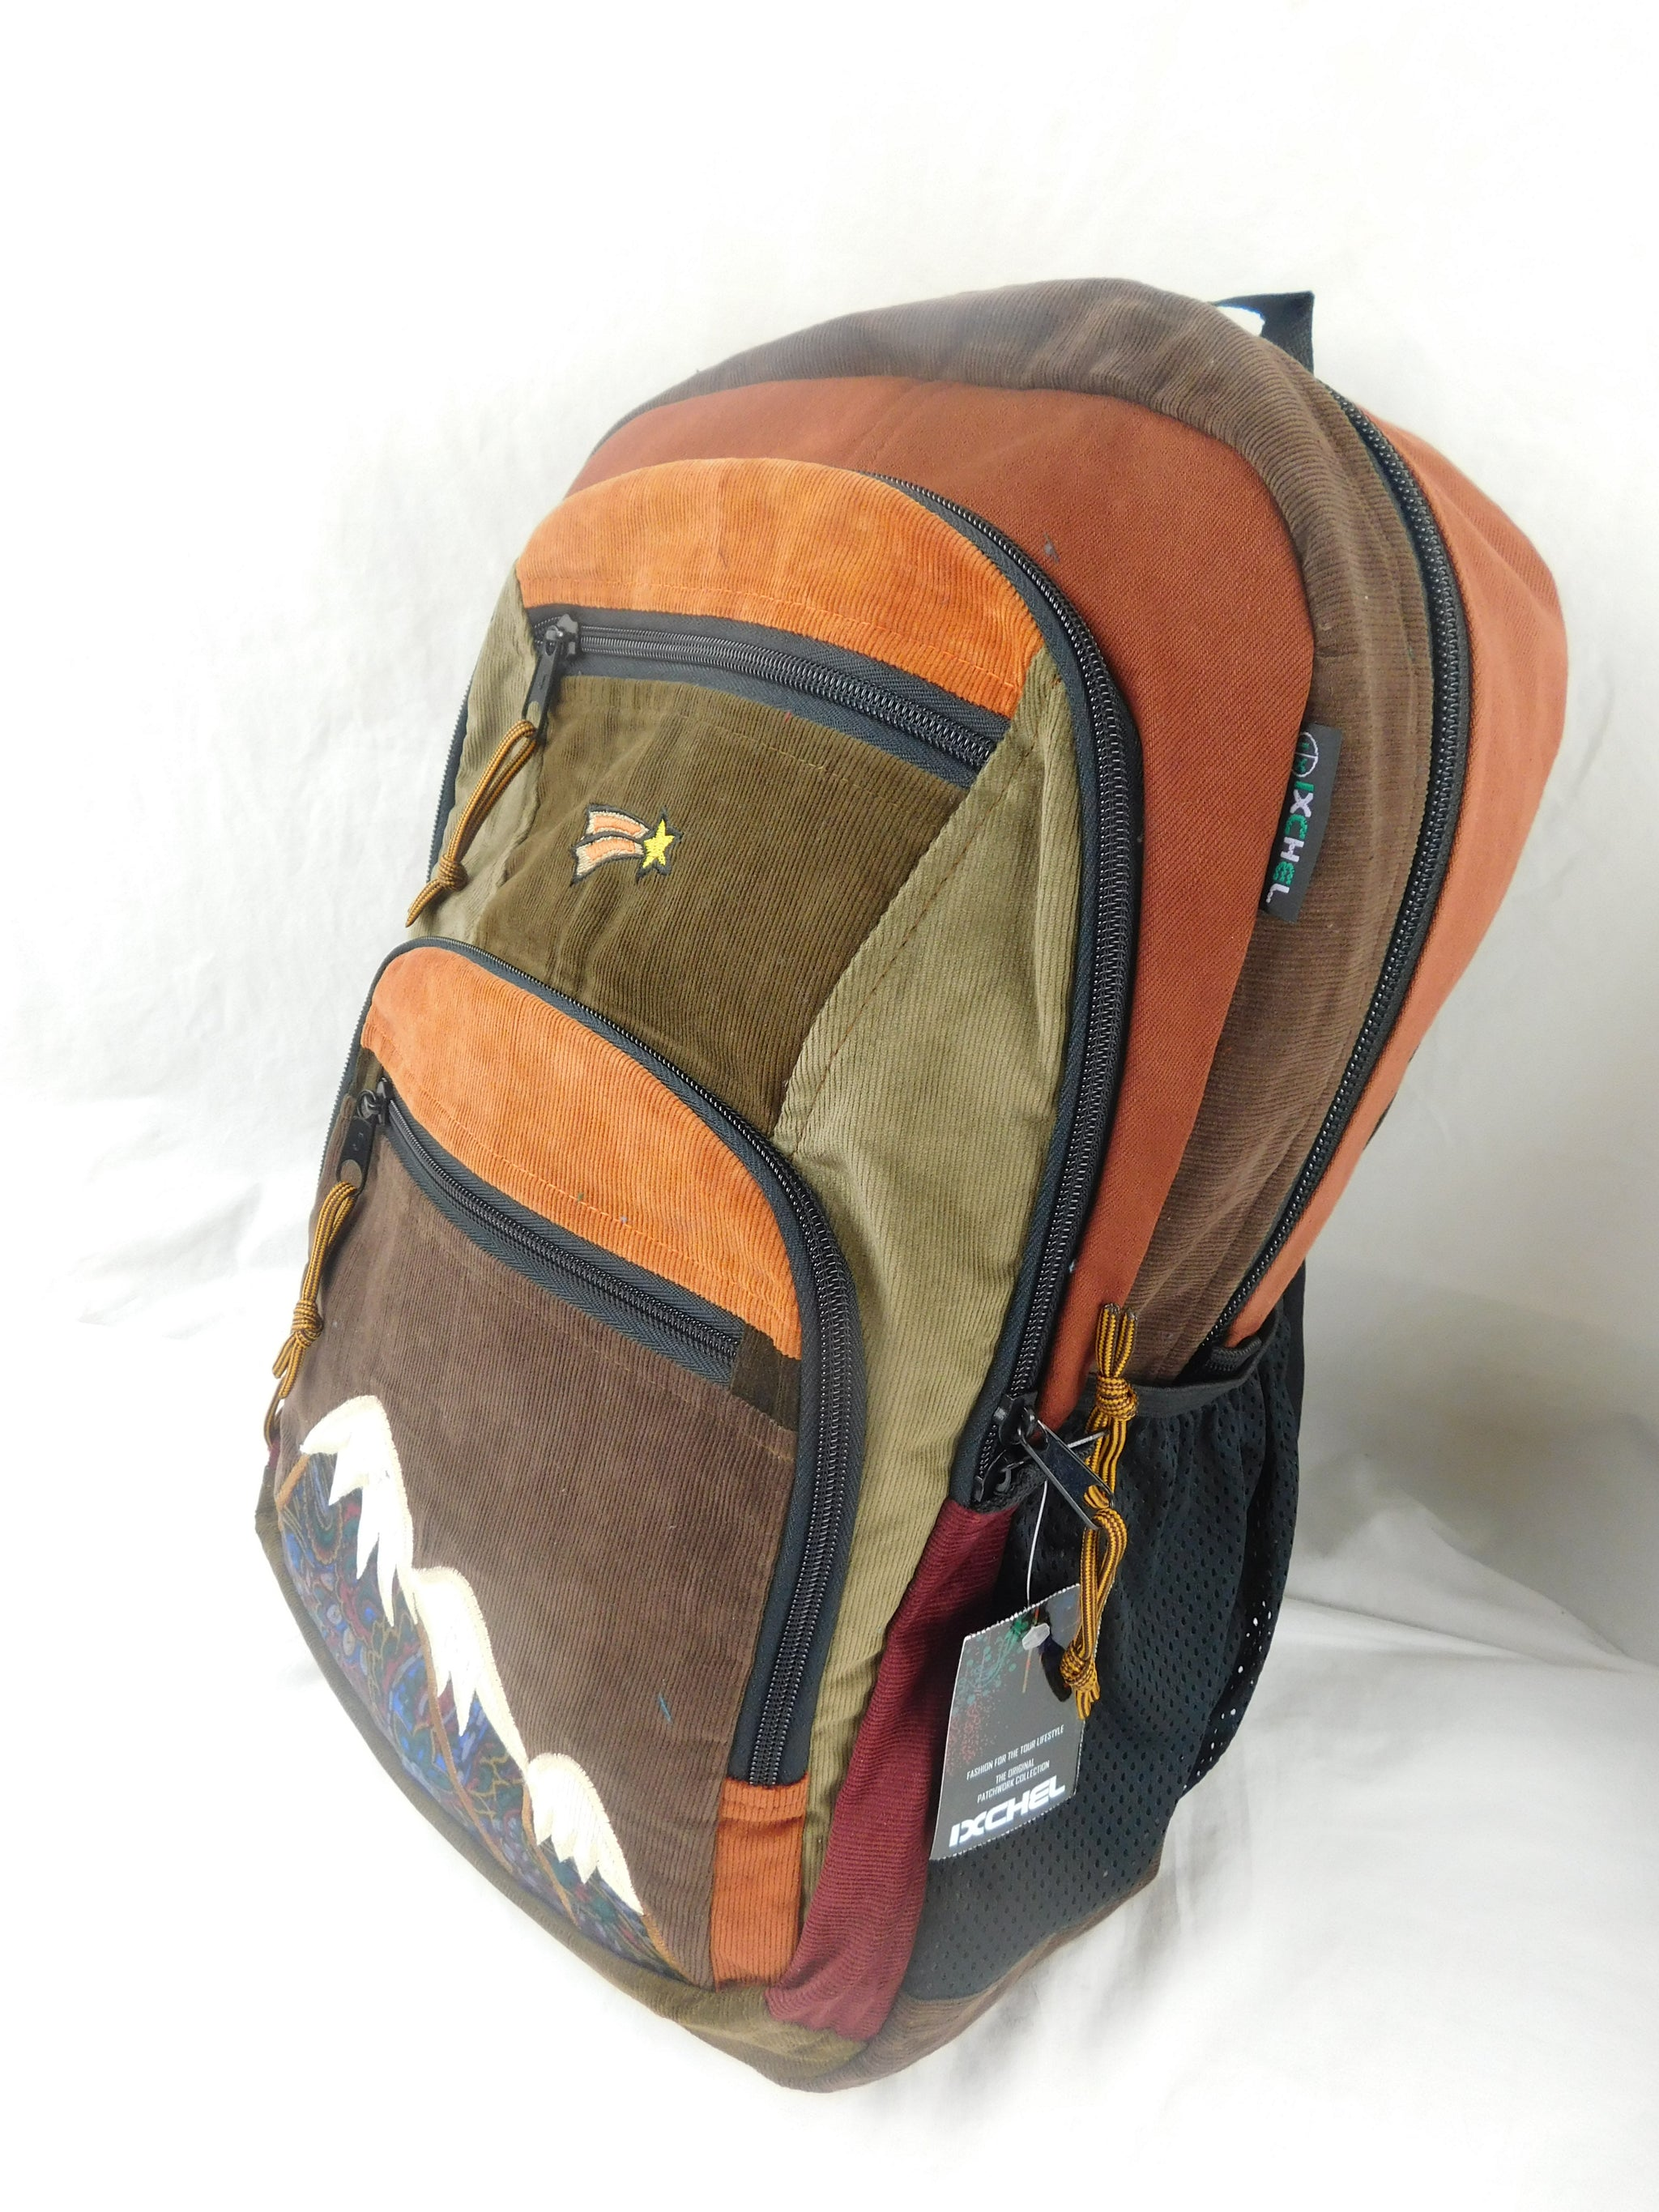 Patchwork Corduroy Backpack with Mountain Applique (Large)